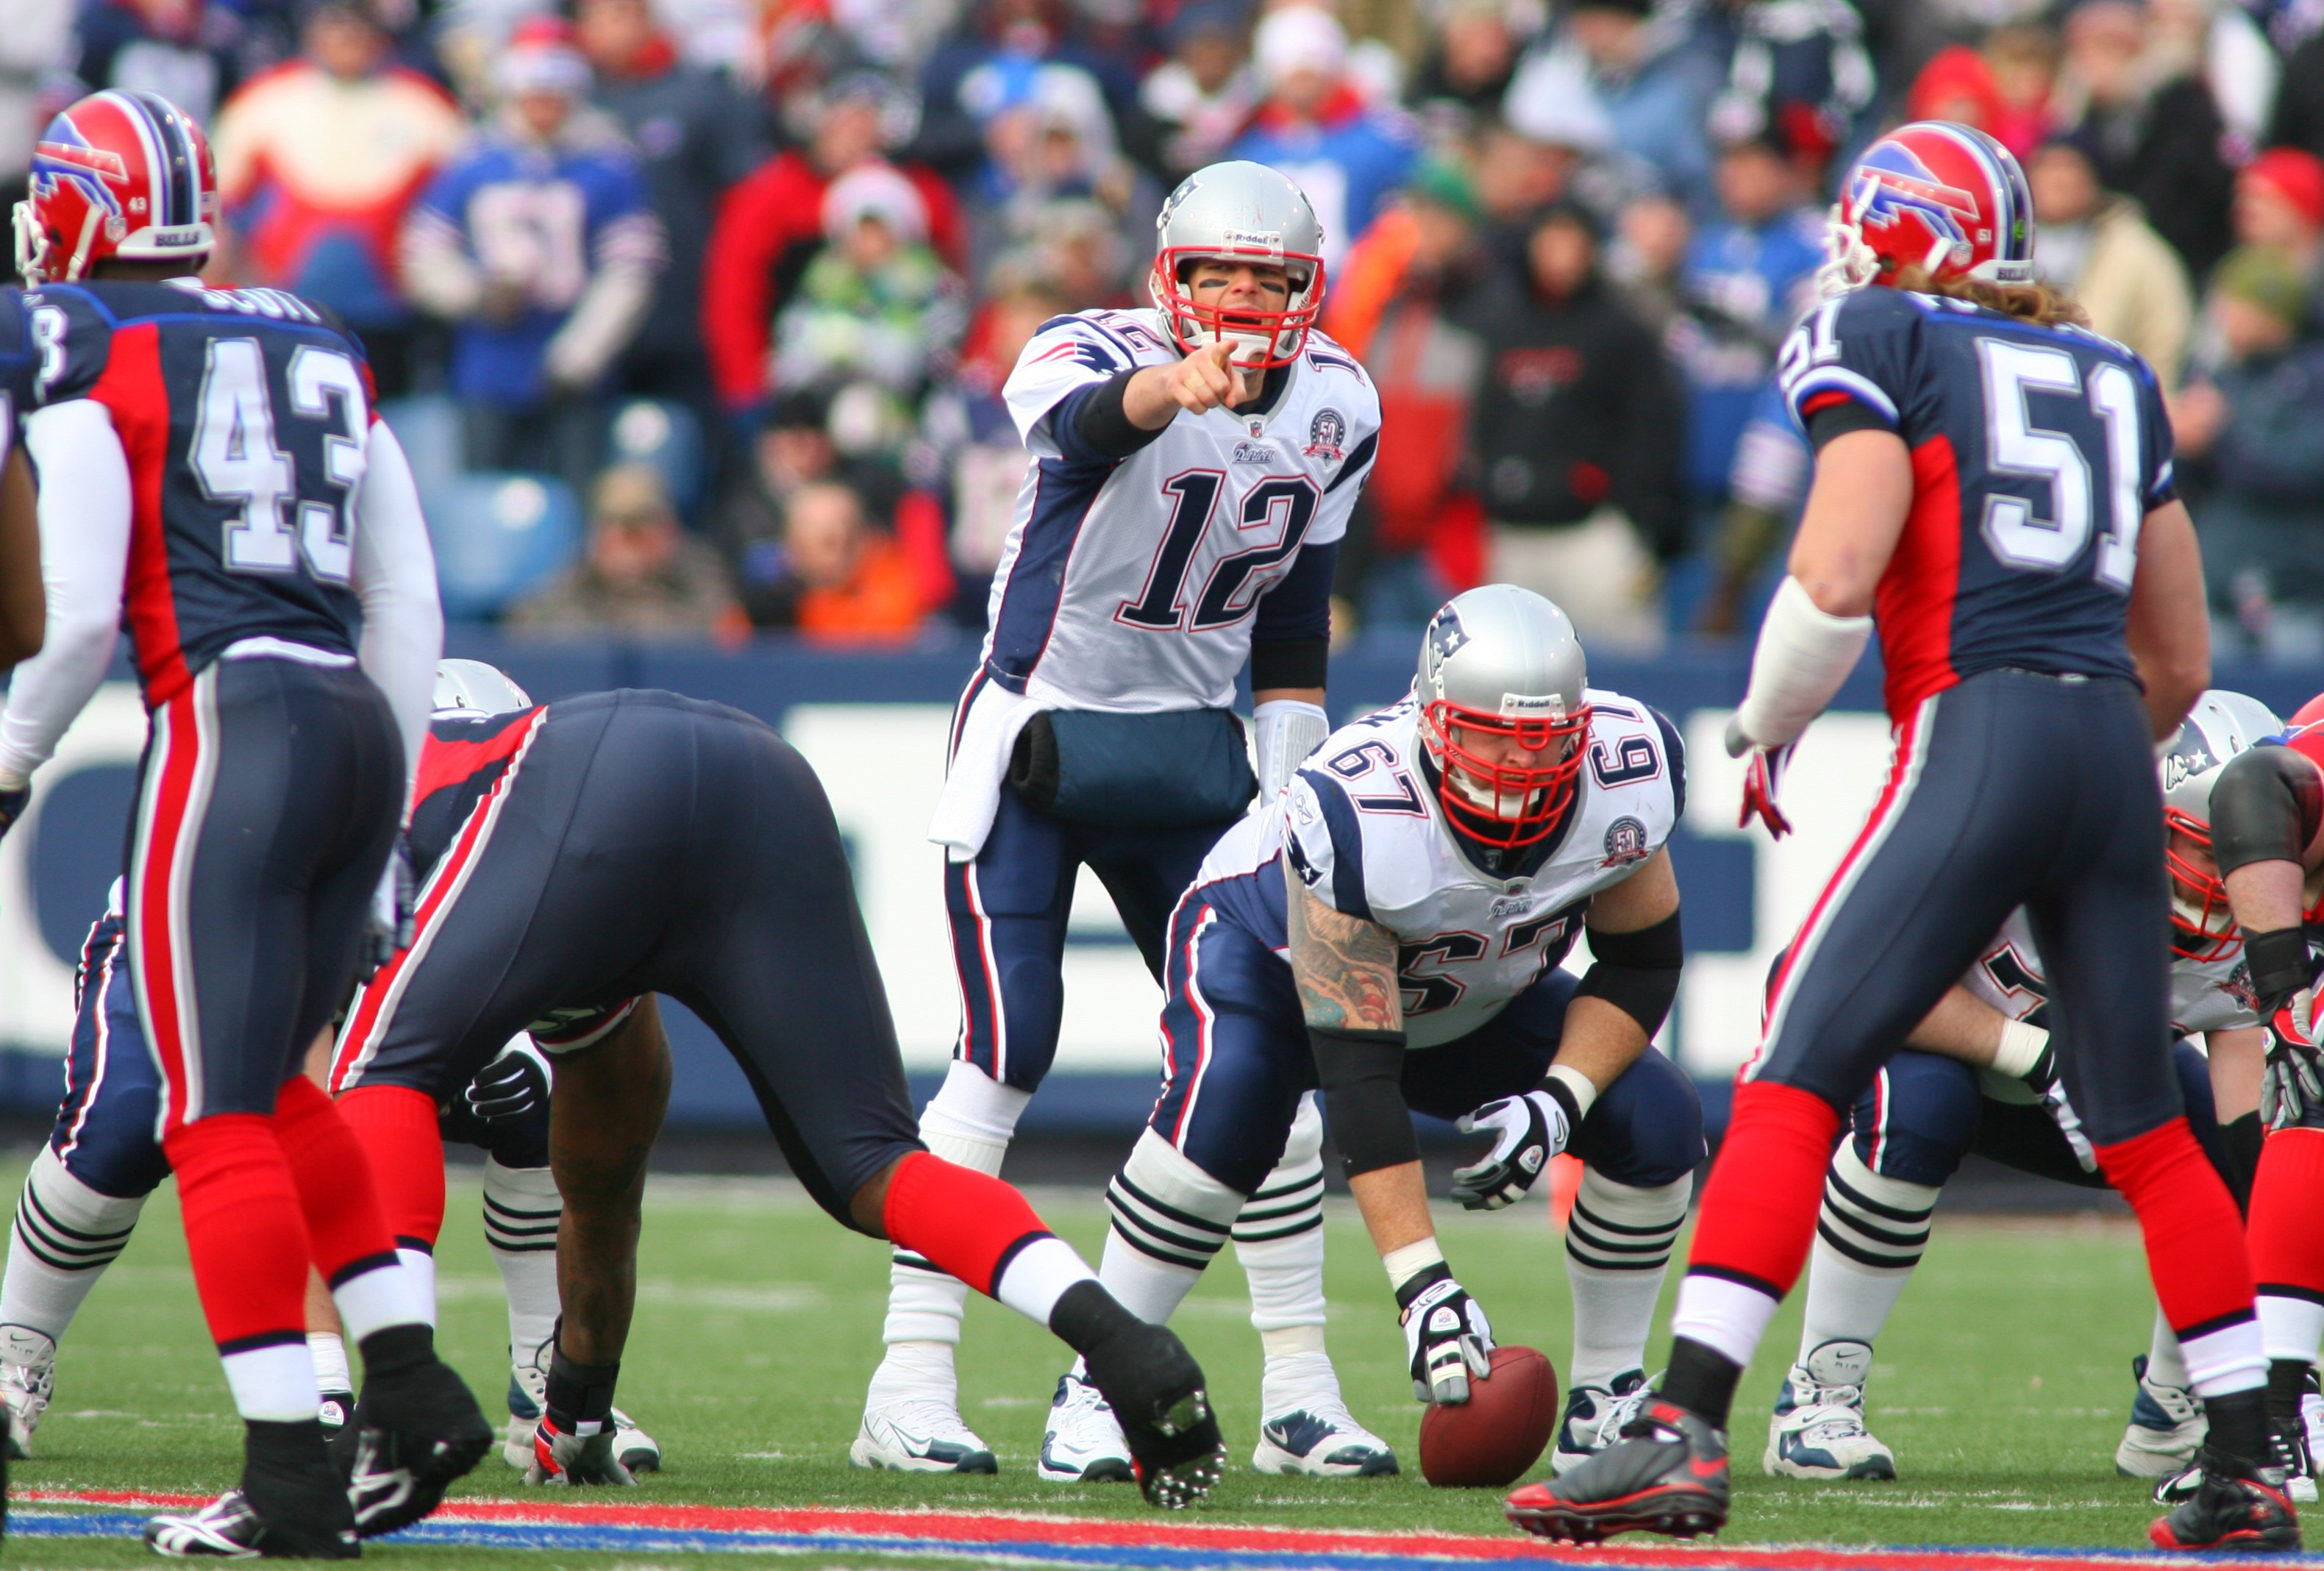 ORCHARD PARK, NY - DECEMBER 20: Tom Brady #12 of the New England Patriots calls a play against the Buffalo Bills during the game at Ralph Wilson Stadium on December 20, 2009 in Orchard Park, New York. (Photo by: Rick Stewart/Getty Images)